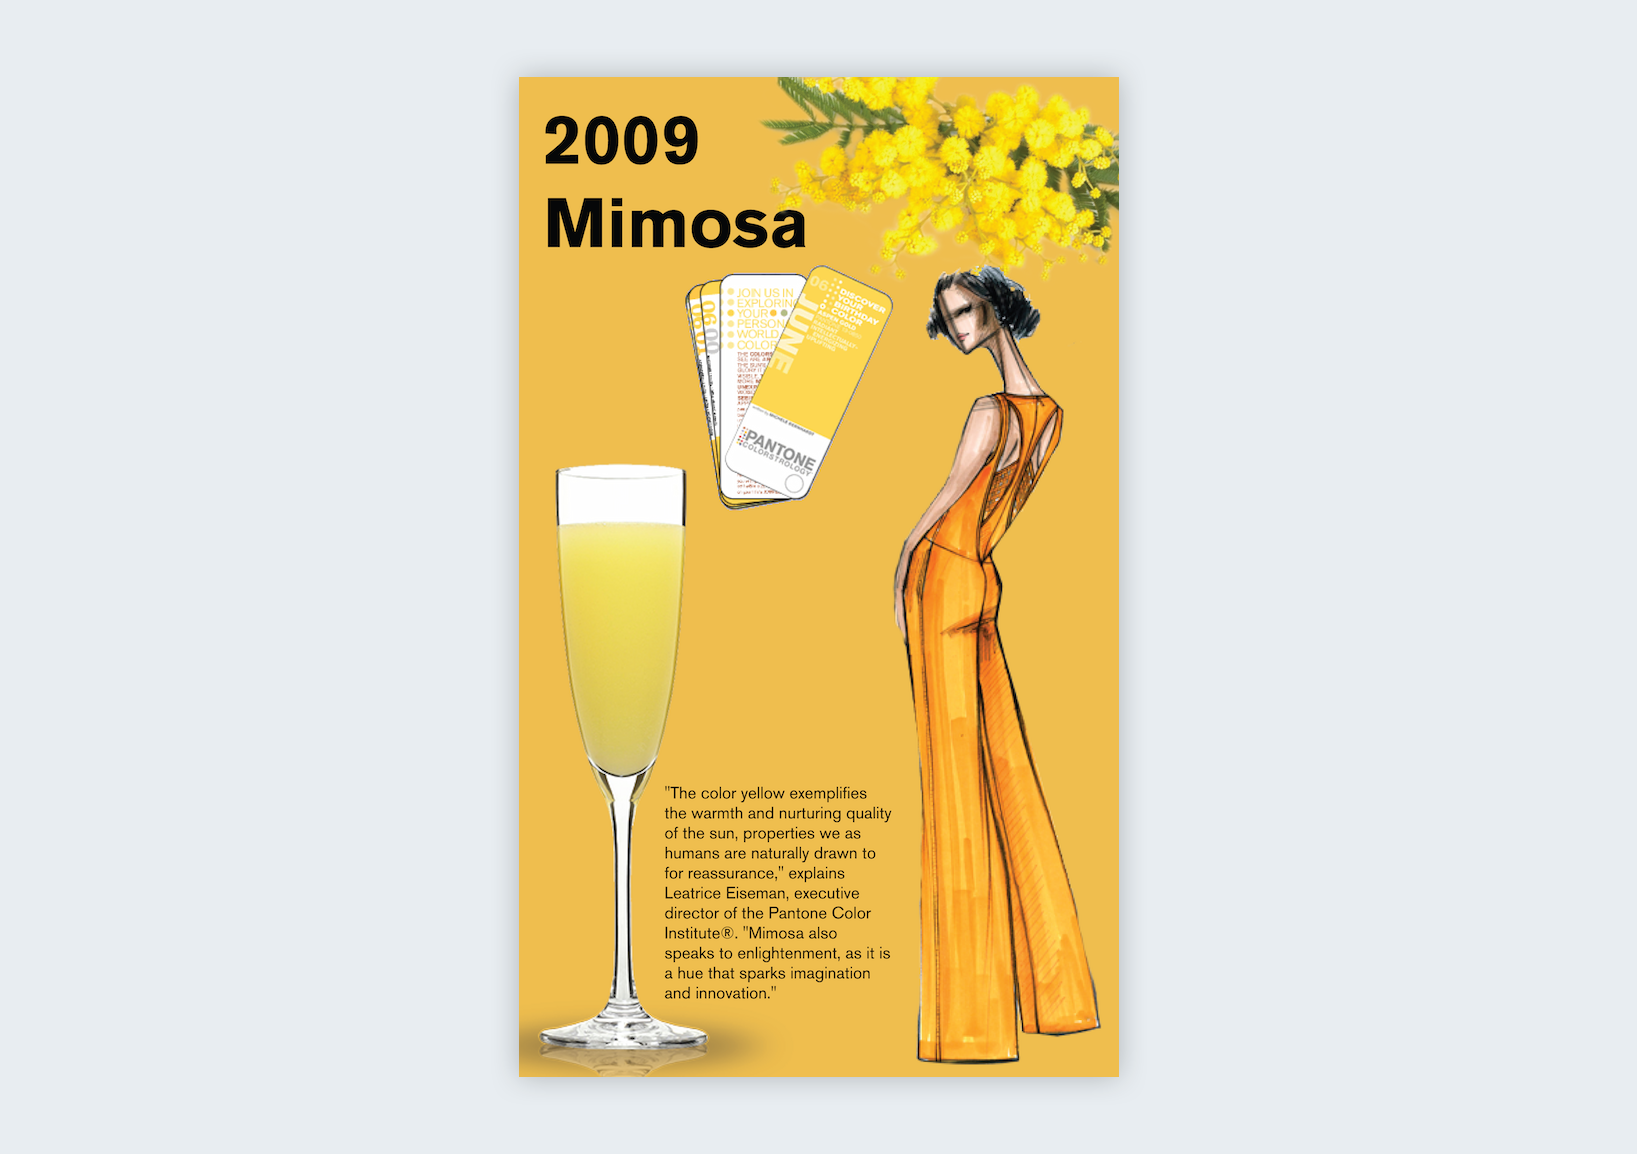 pantone color of the year 2009 mimosa